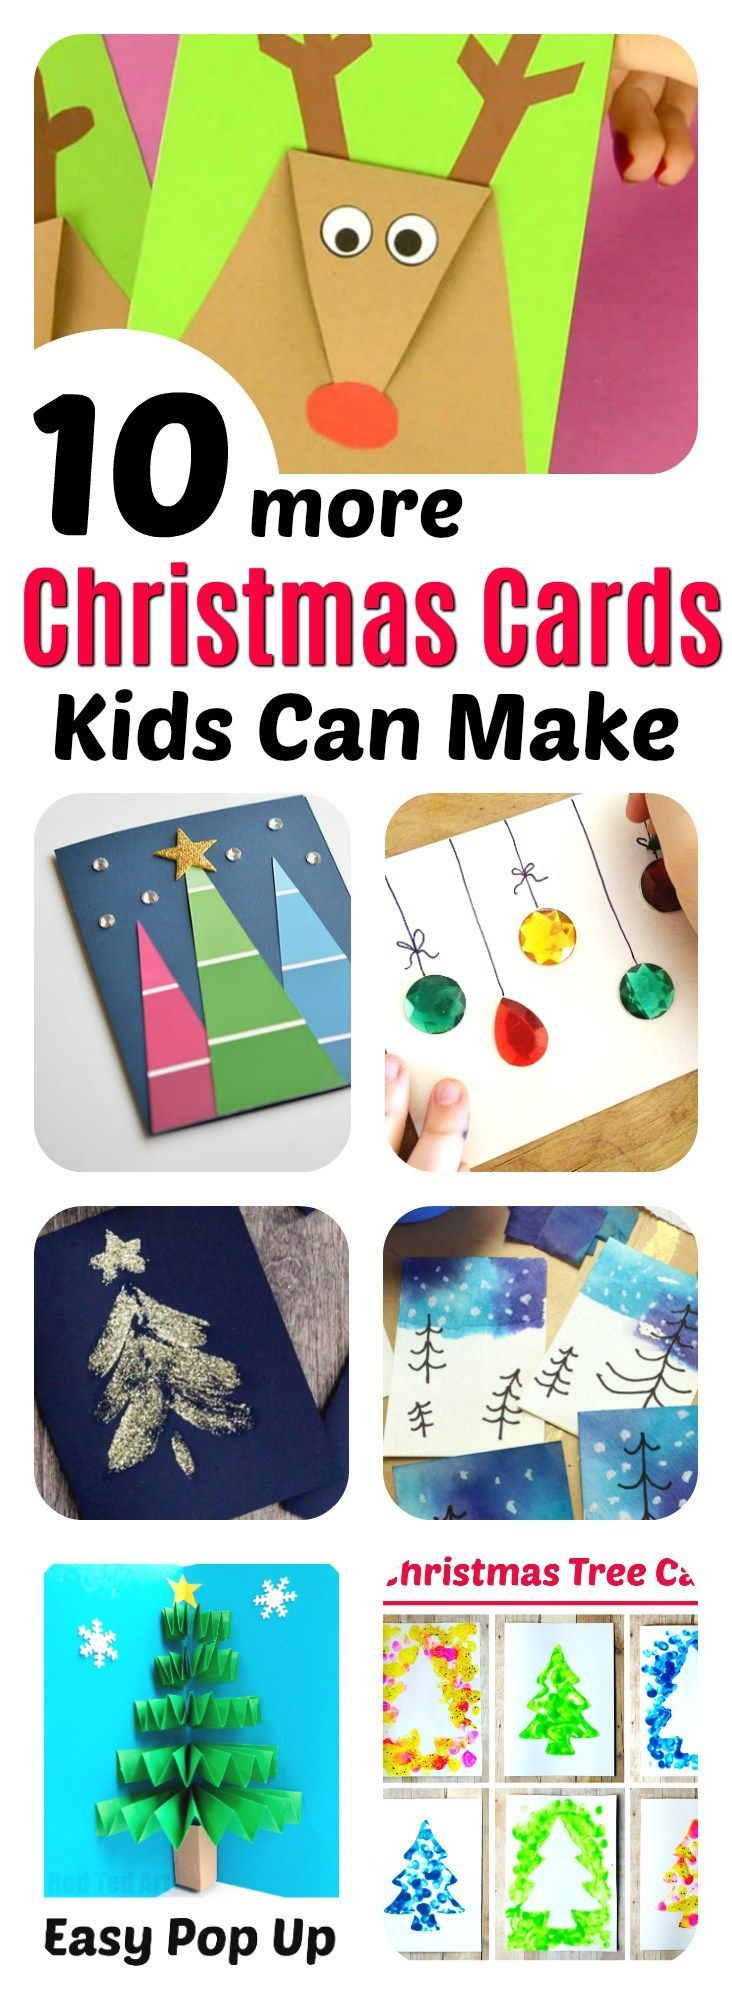 Christmas cards kids can make more ideas christmas cards